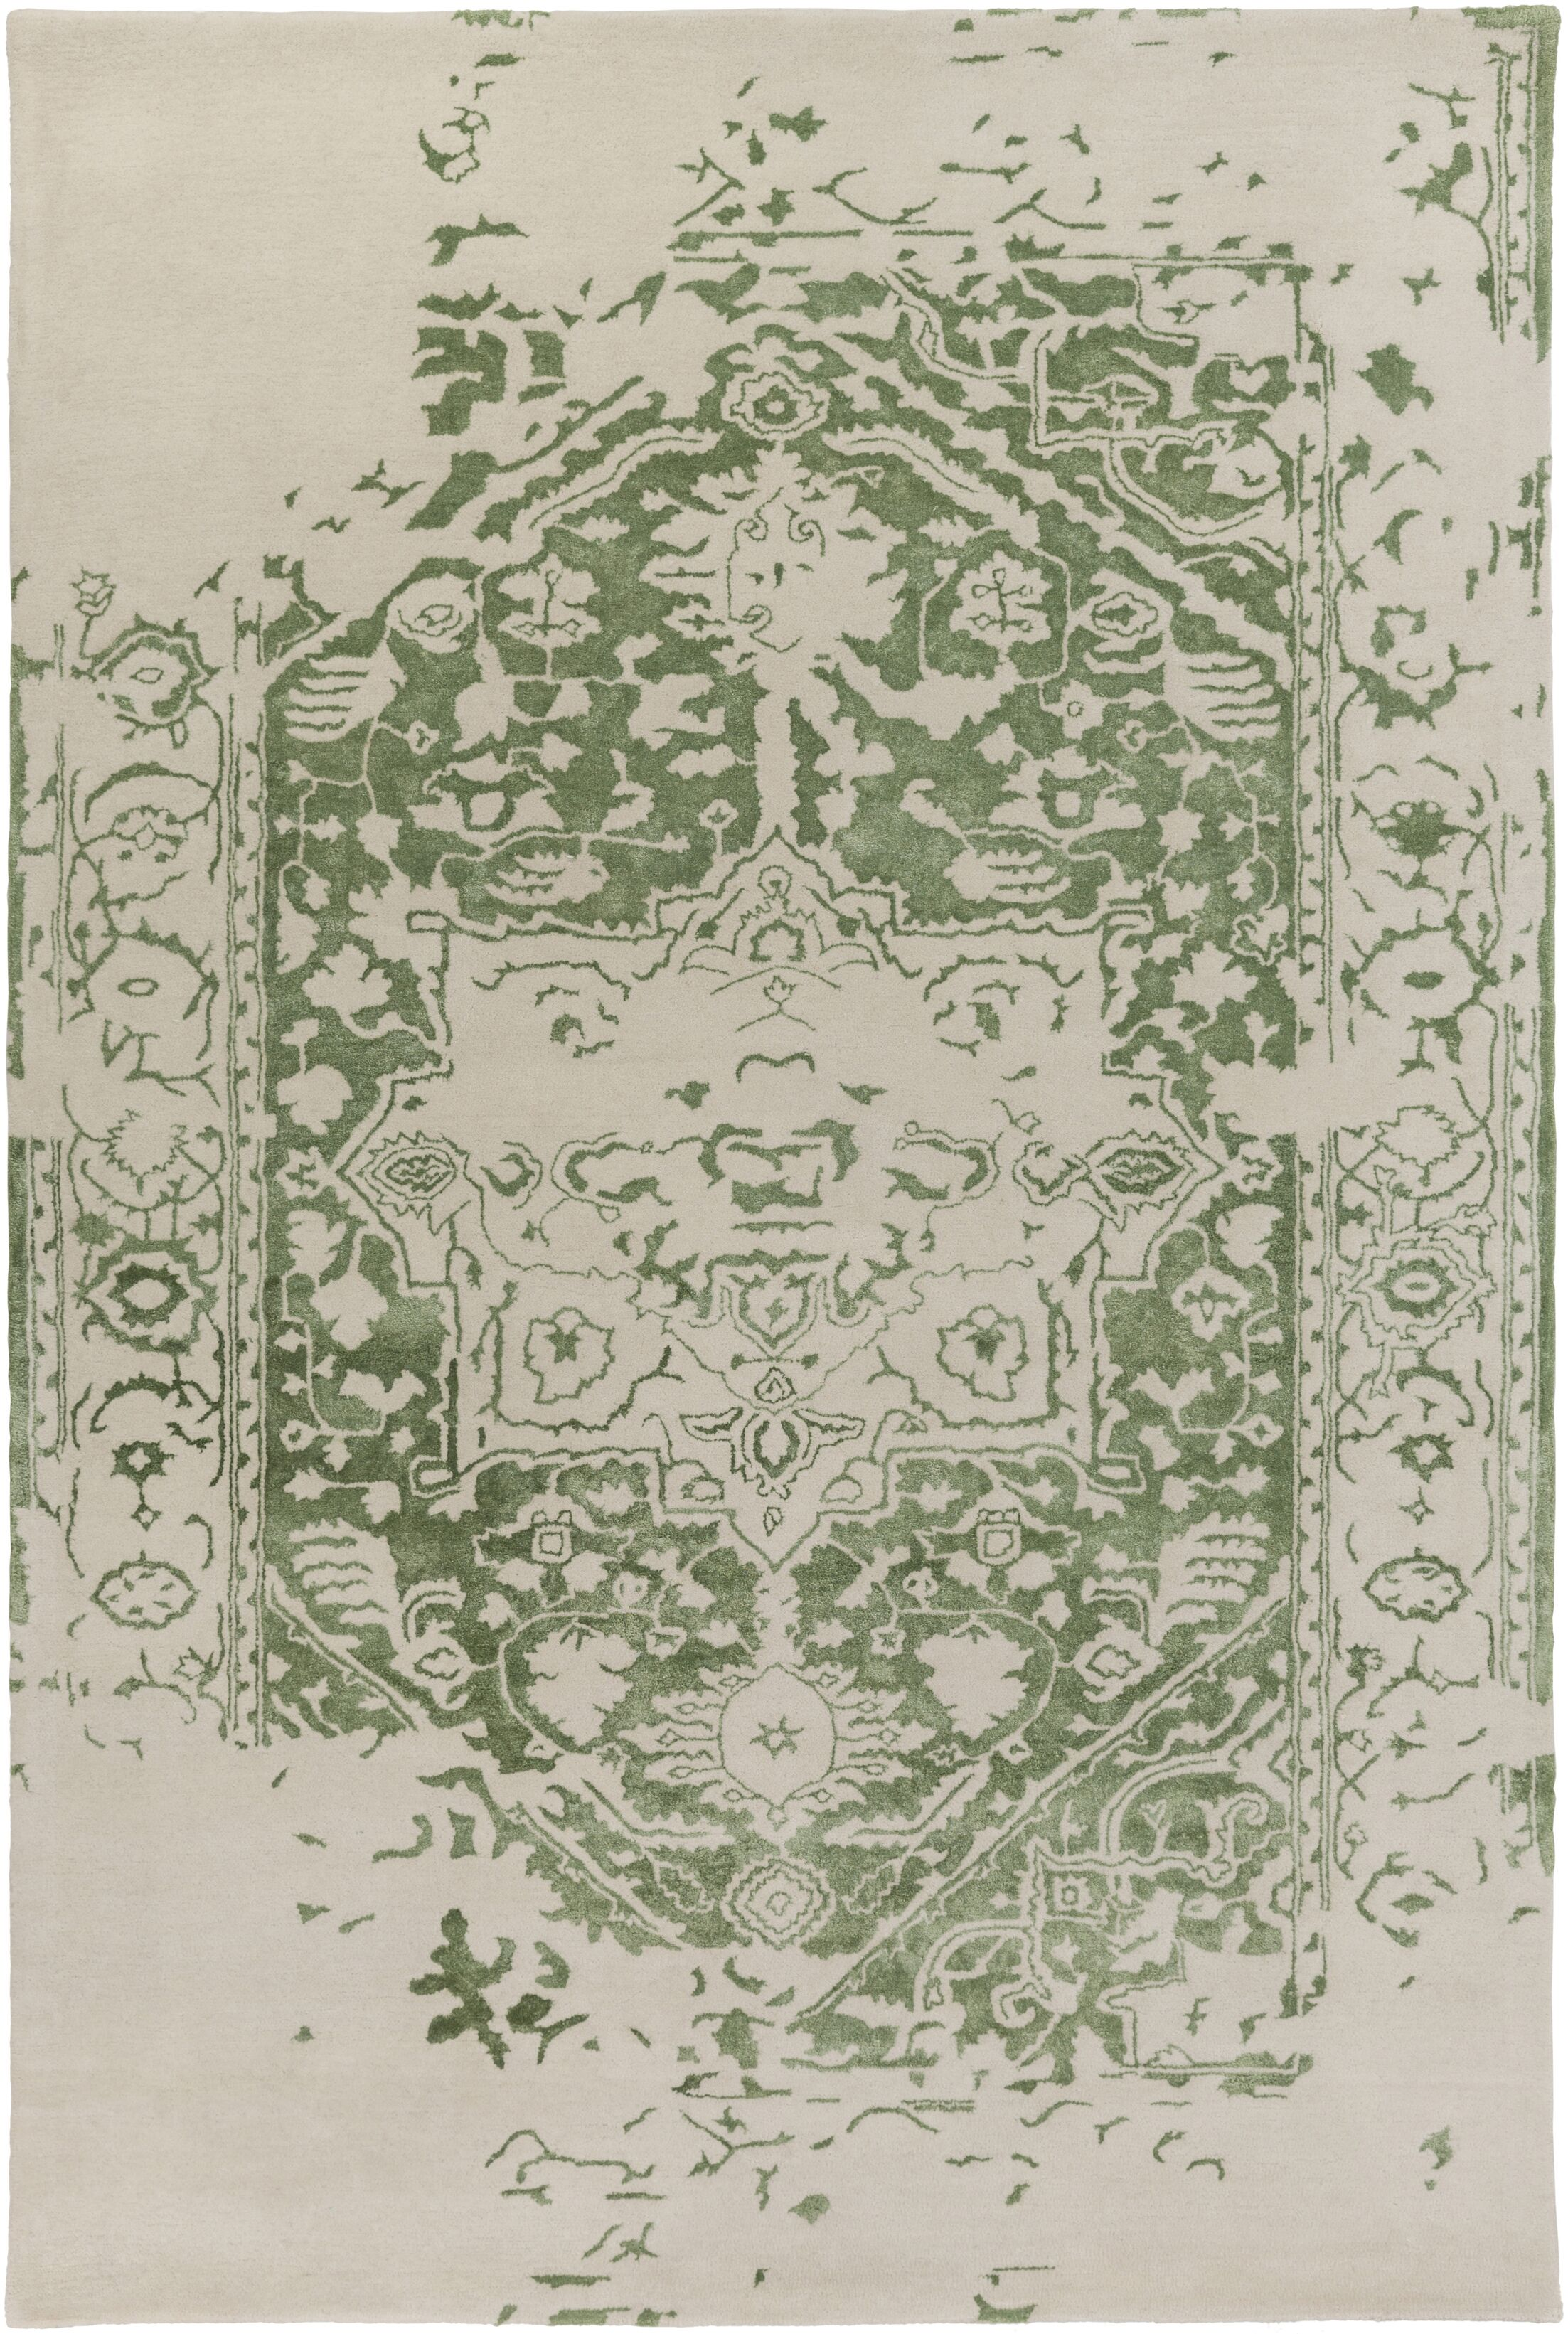 Angeles Hand Tufted Wool Green/Gray Area Rug Rug Size: 10' x 14'